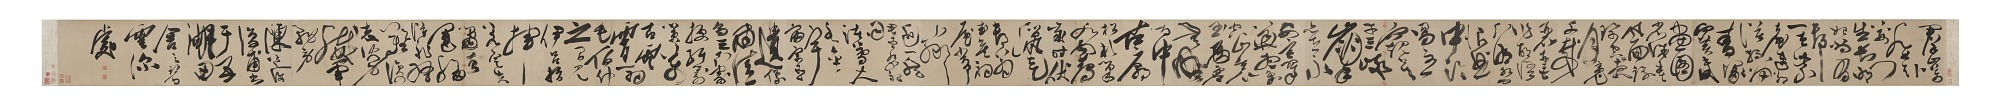 full image: Three poems by Du Fu in wild-cursive script